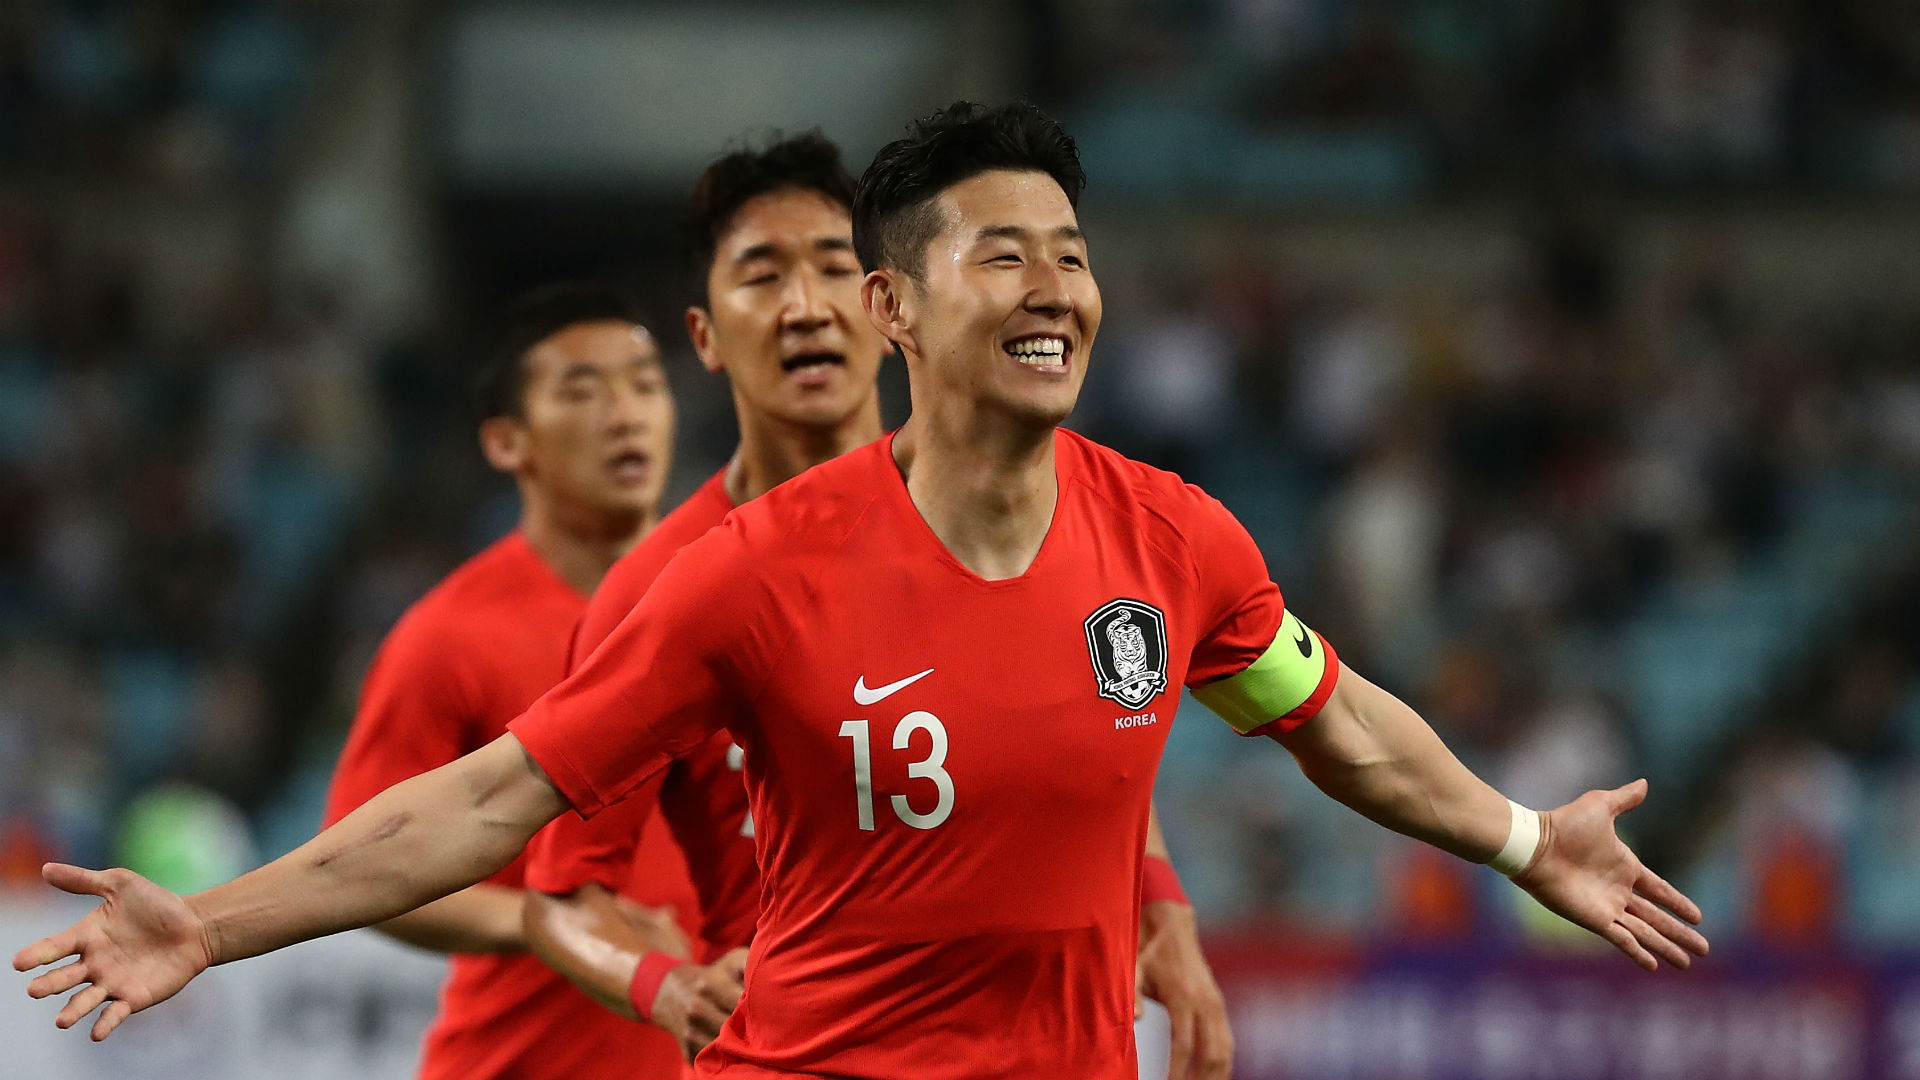 2019 Asian Cup: Son aims to continue golden period with South Korea